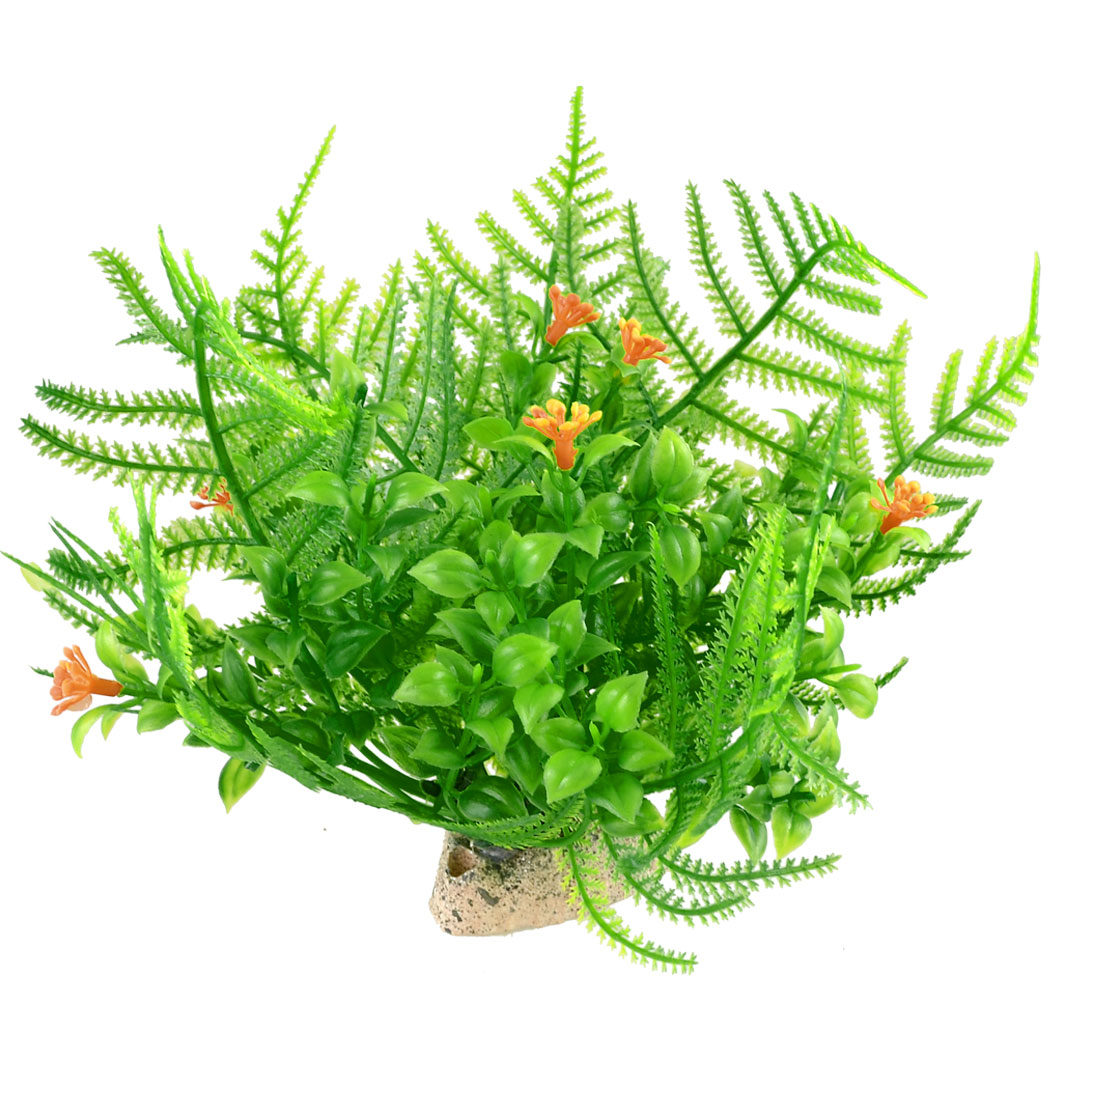 Plastic-Aquatic-Floral-Plant-Decor-Grass-Green-Orange-Red-for-Aquarium-Fish-Tank